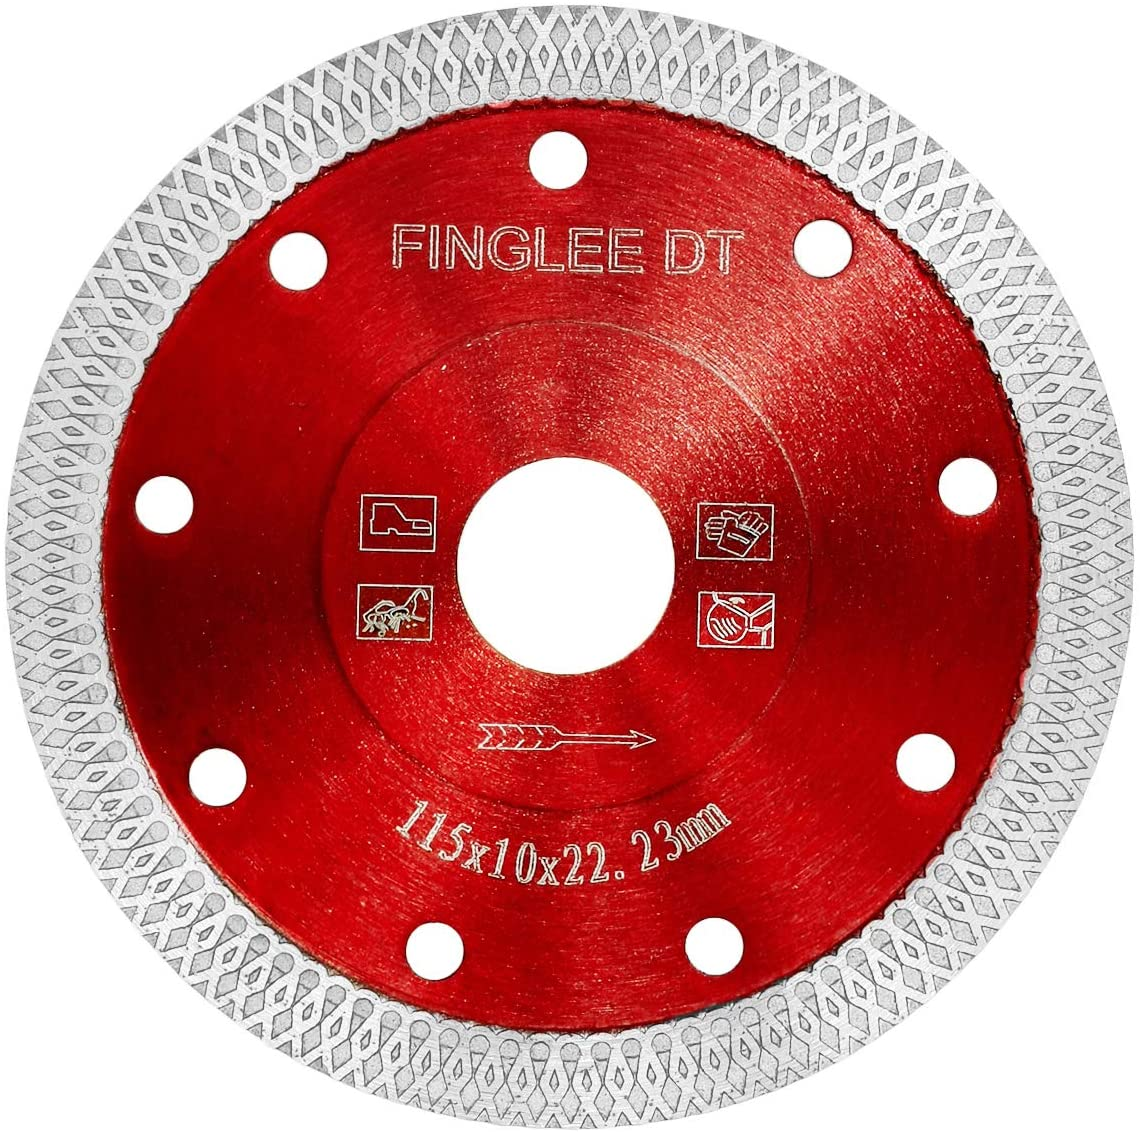 FINGLEE DT 4.5 Inch Super Thin Diamond Saw Blade for Porcelain Tile Ceramic,Diamond Cutting Blade,with 7/8